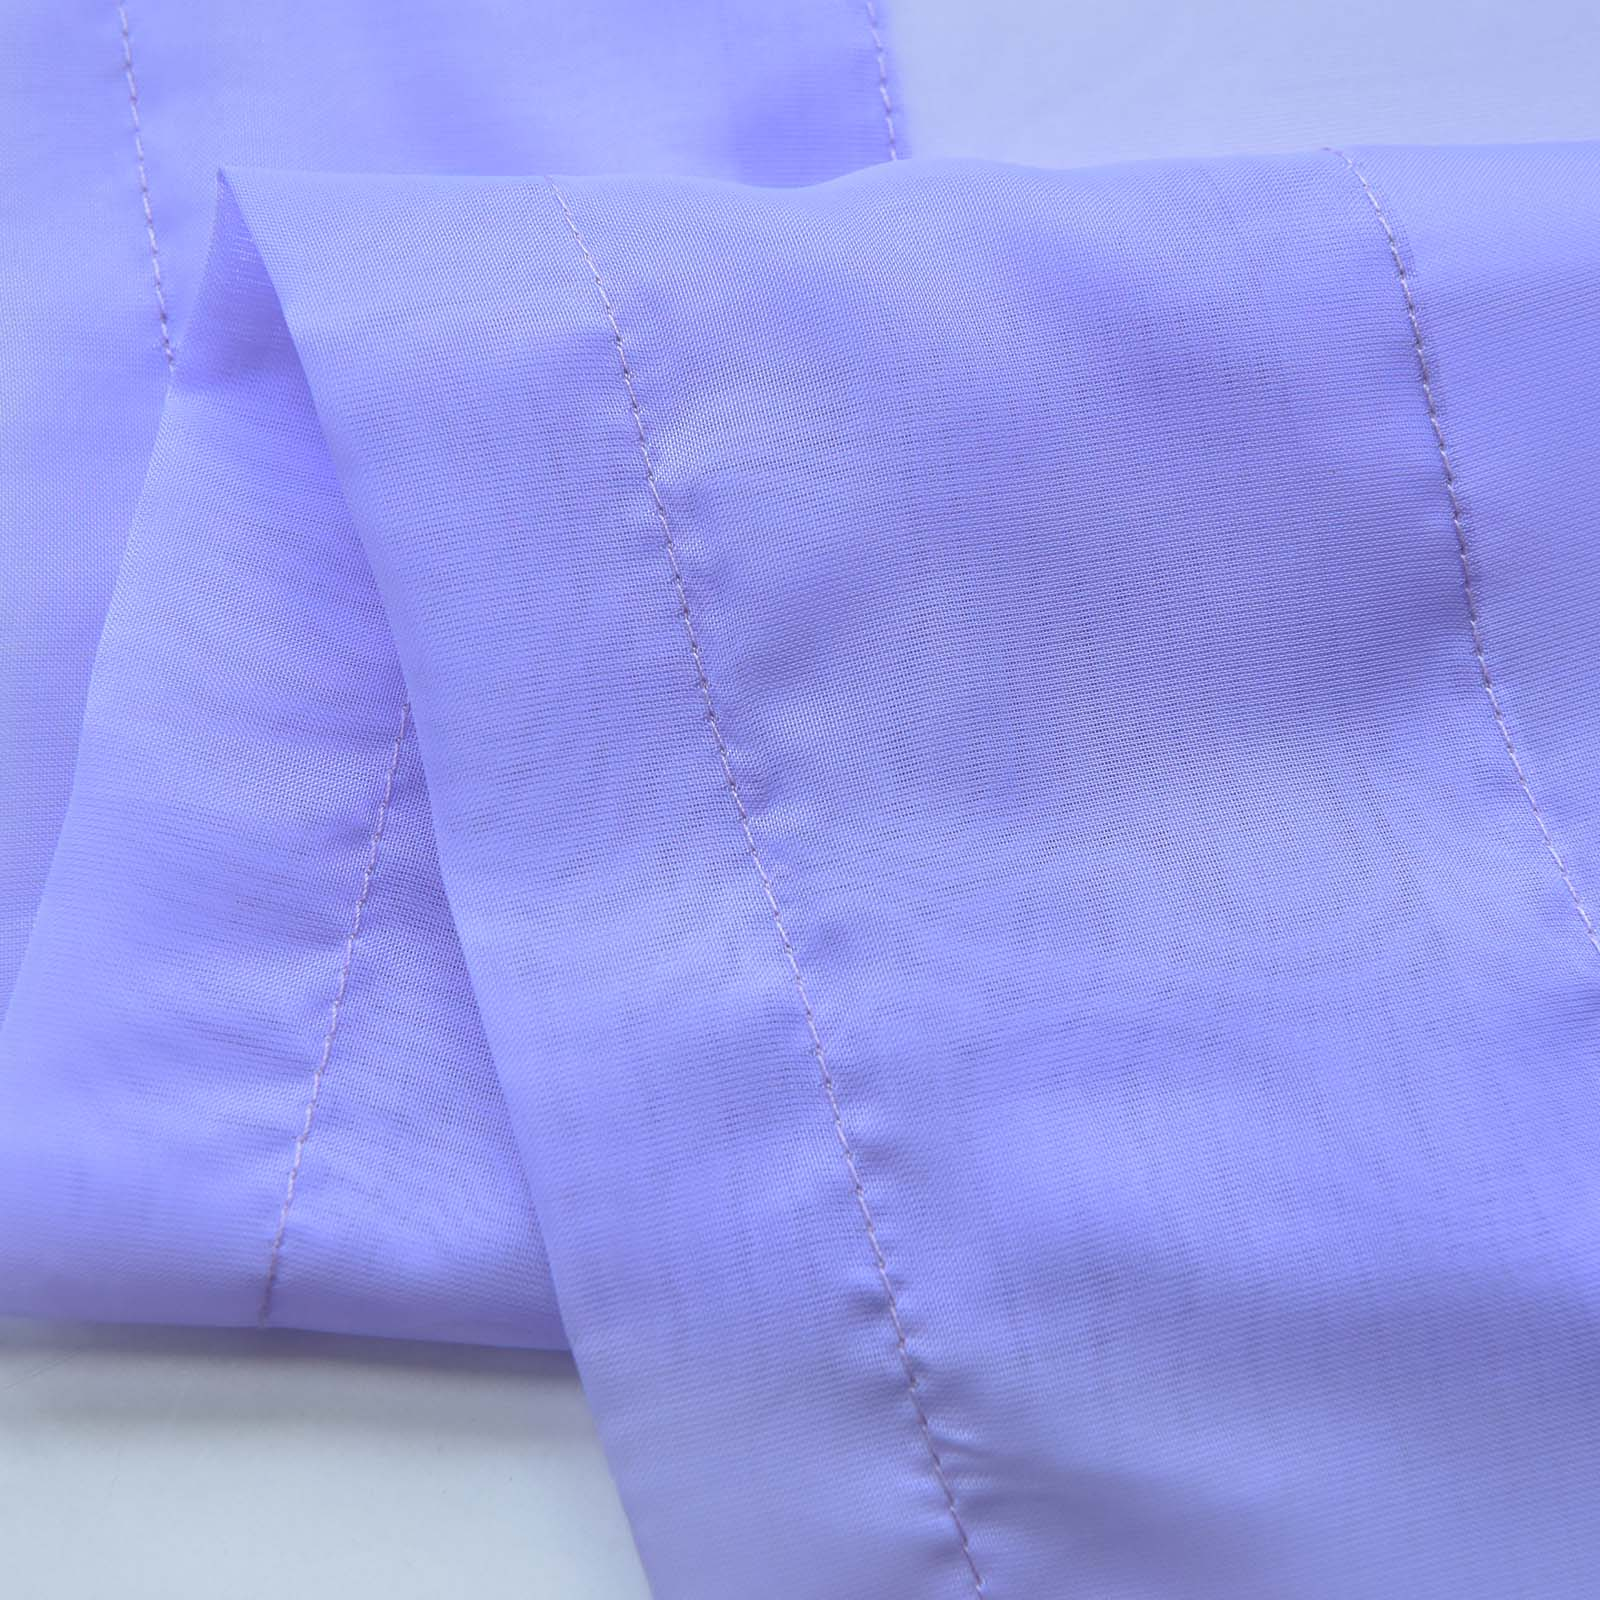 Lavender Sheer Curtains 2 Pack 52